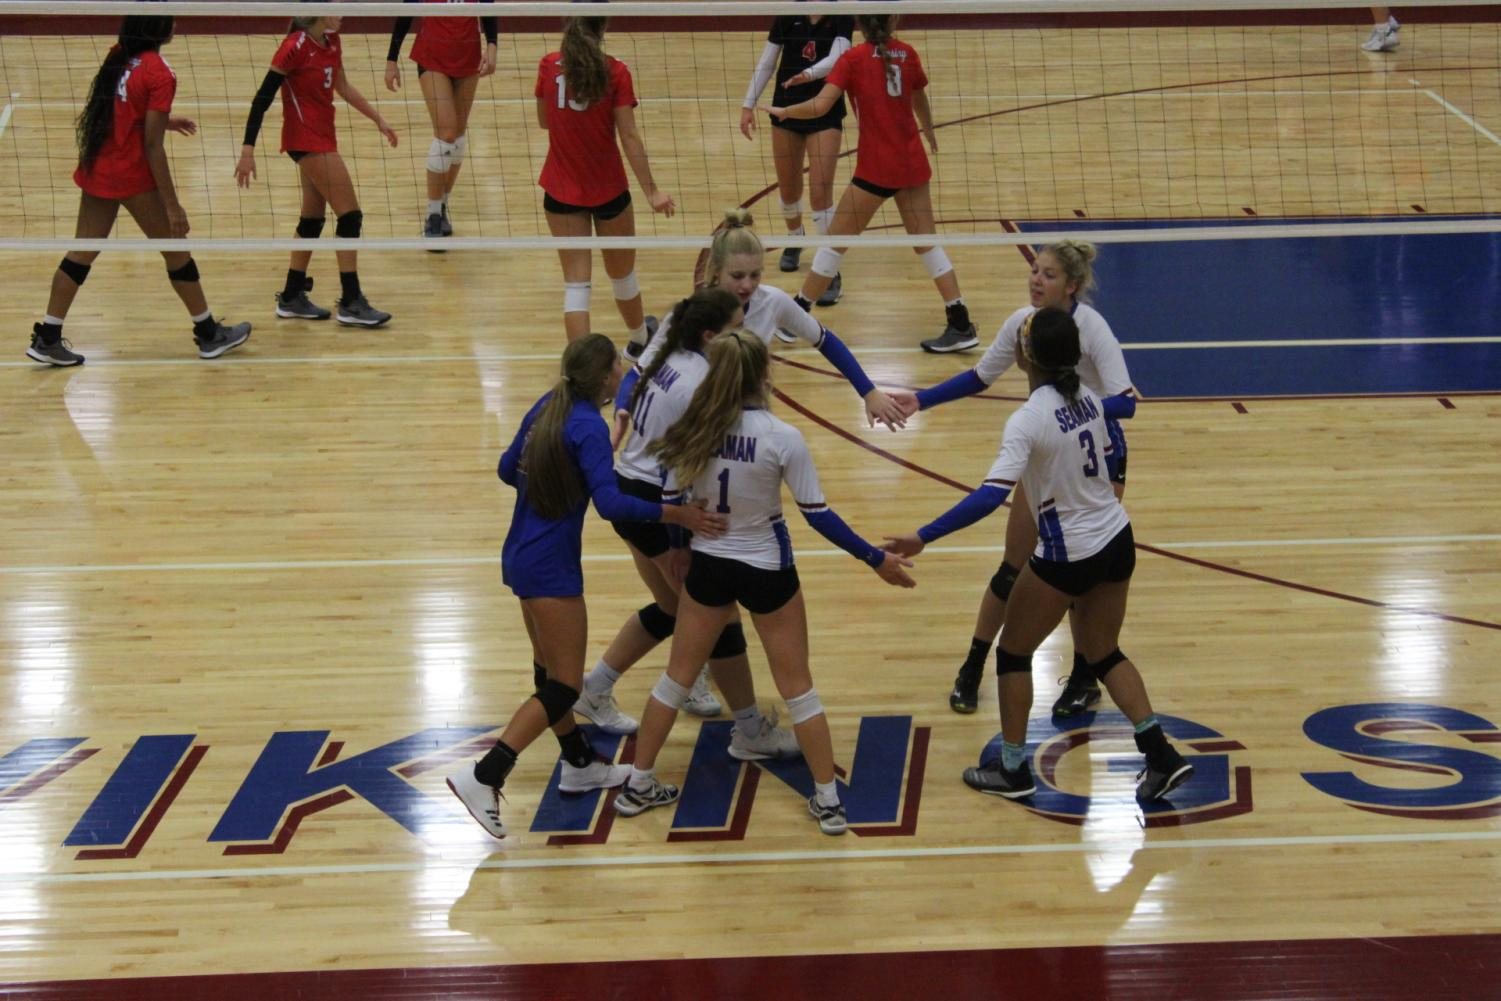 Varsity starters celebrate a kill at their home tournament in a match against Lansing. The Lady Vikes ended the tournament in second place.